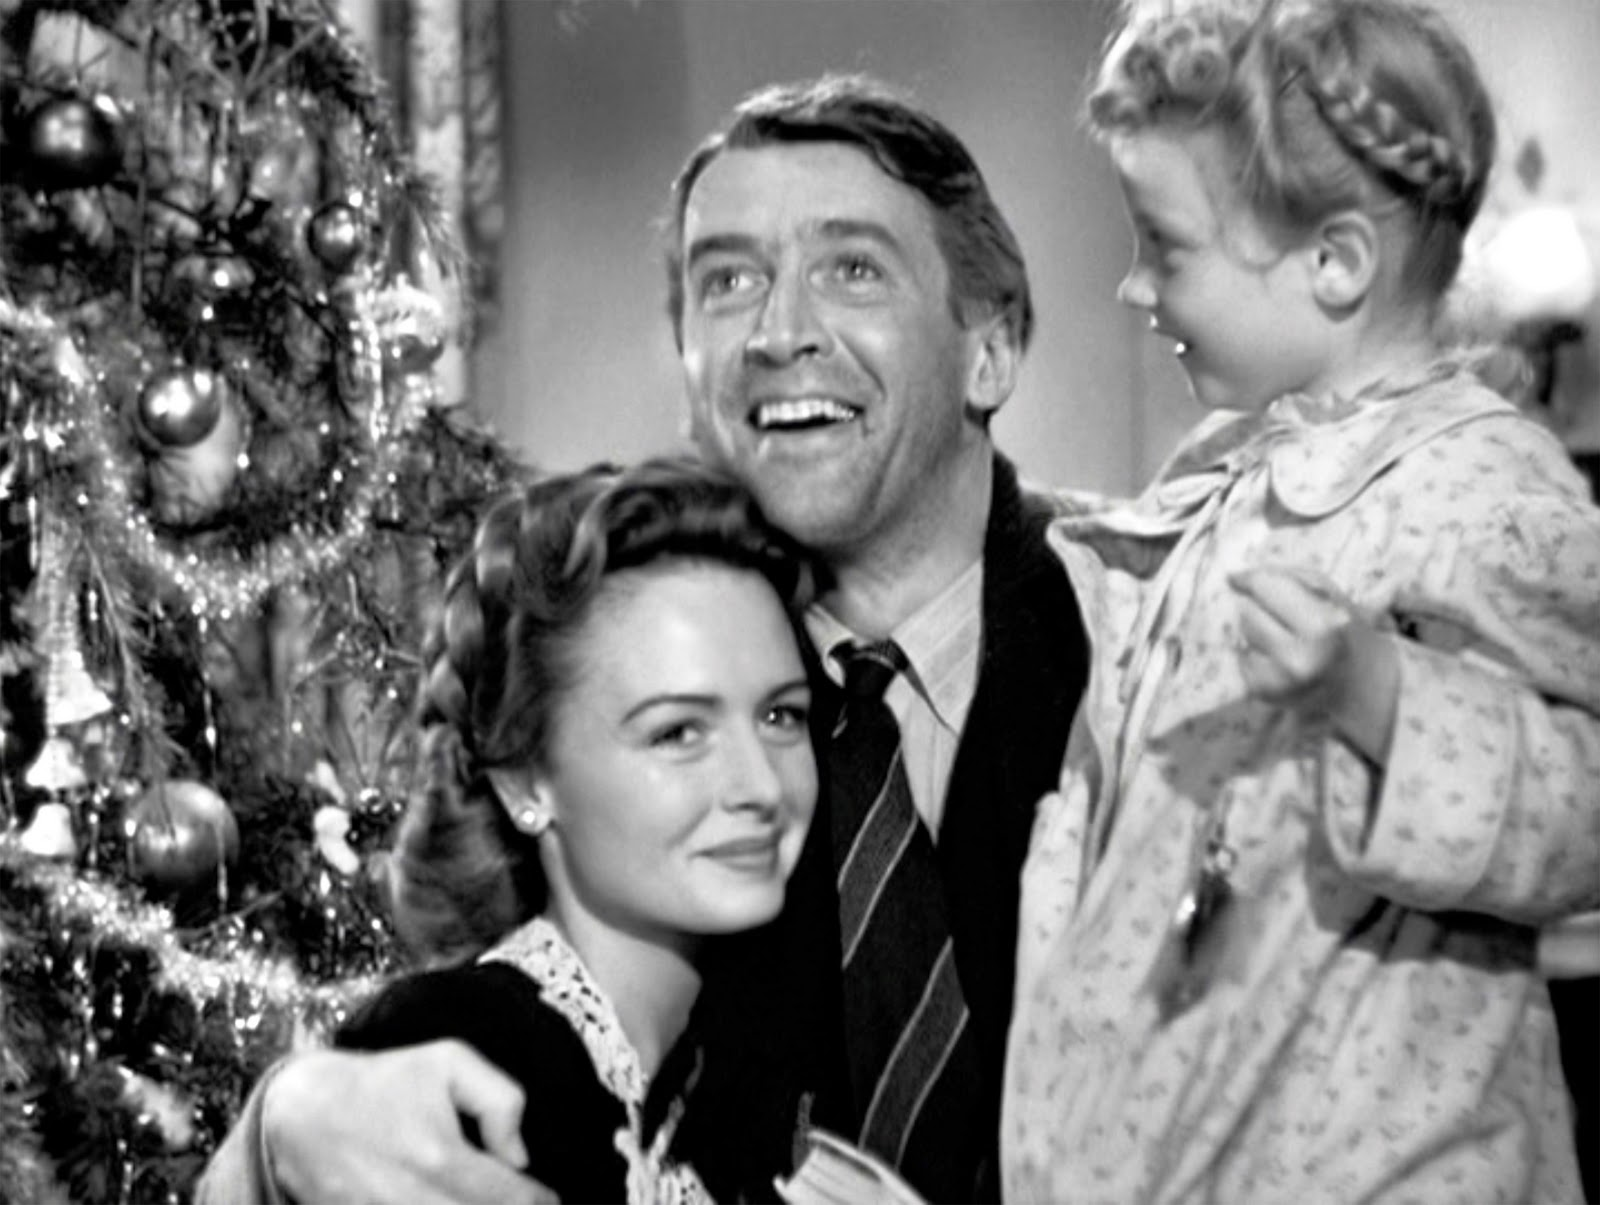 Still shot from the movie: It's A Wonderful Life.